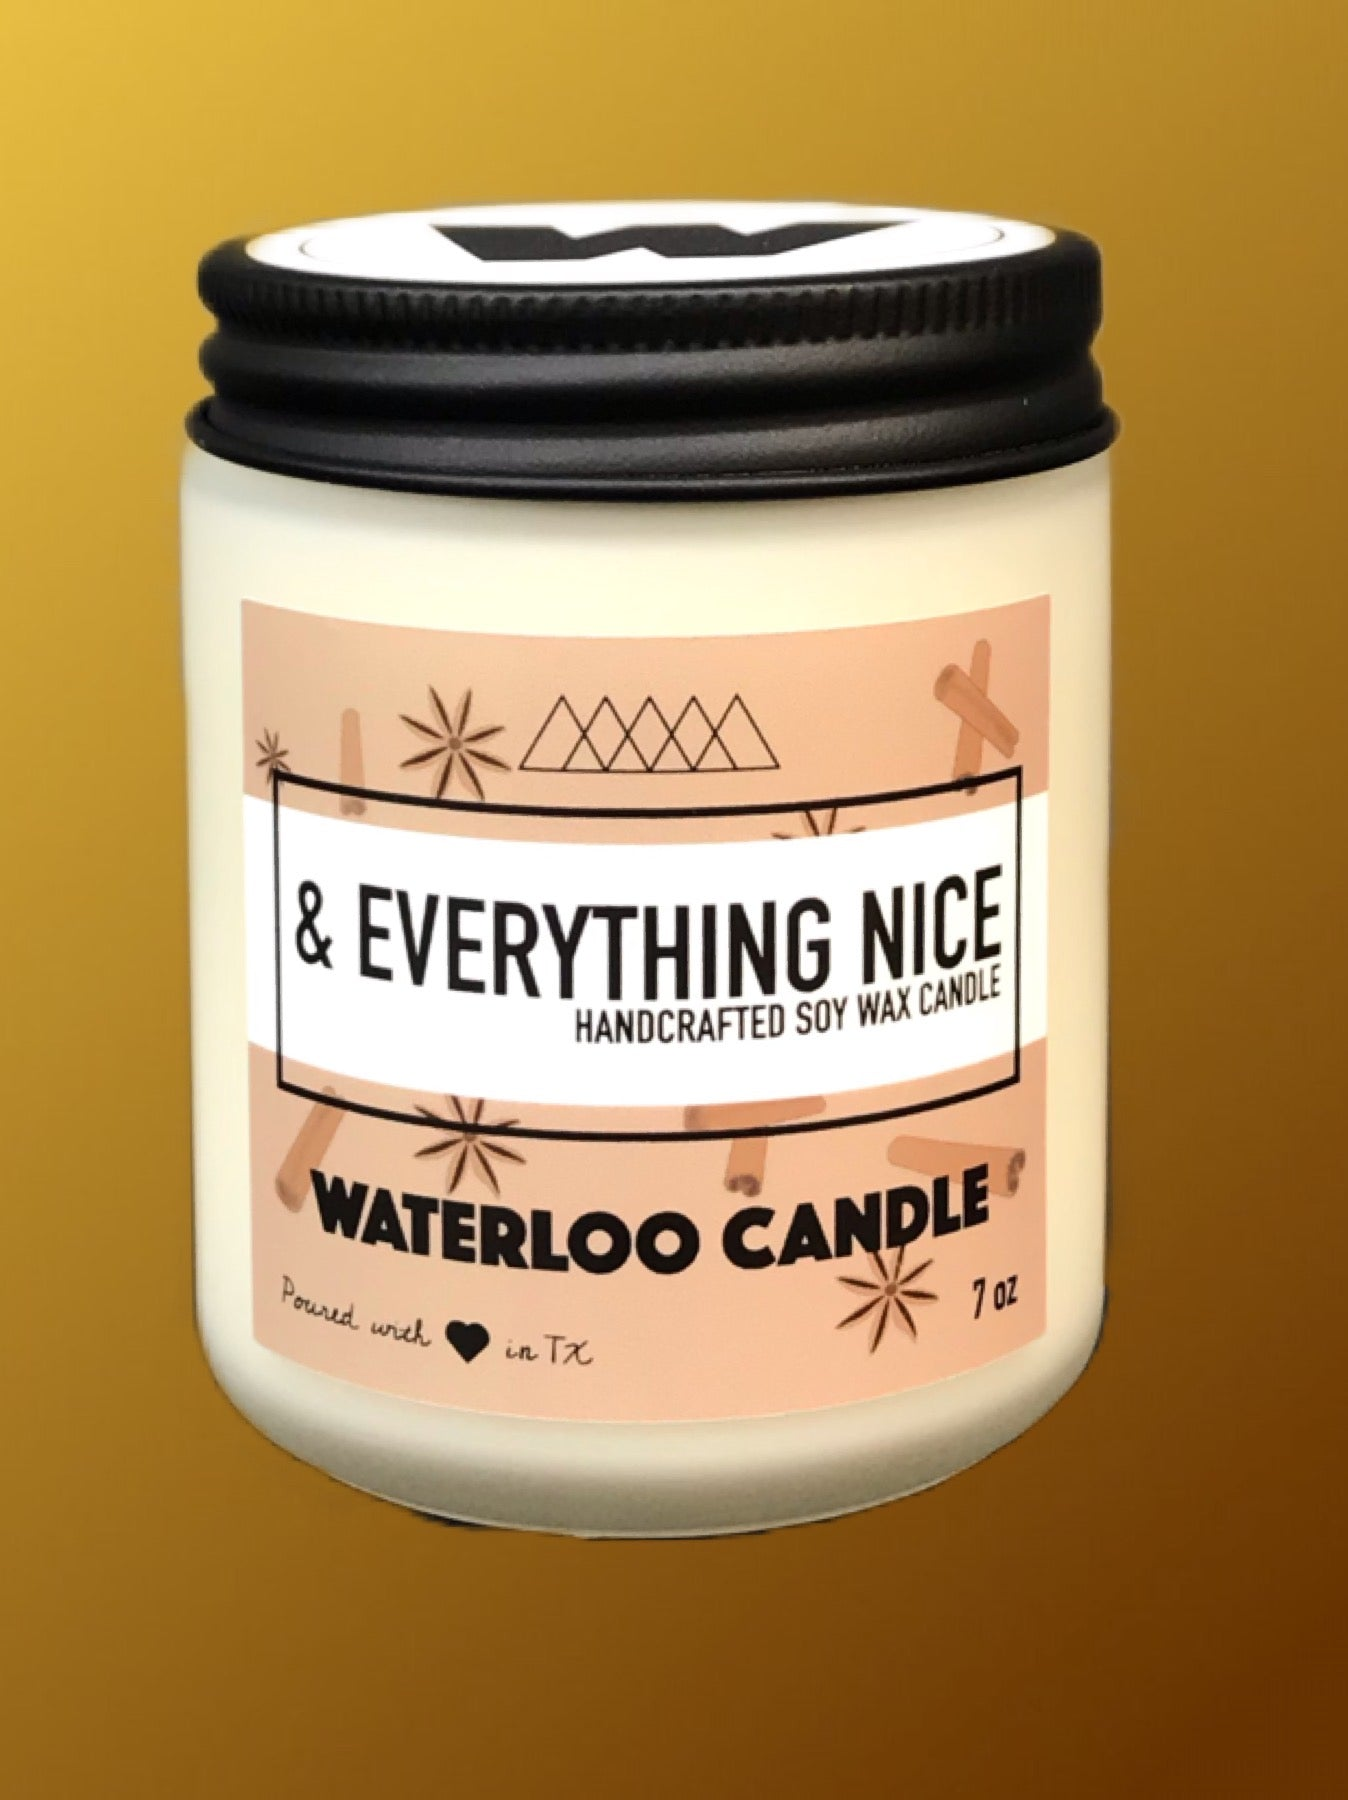 & Everything Nice 7oz Soy Wax Candle